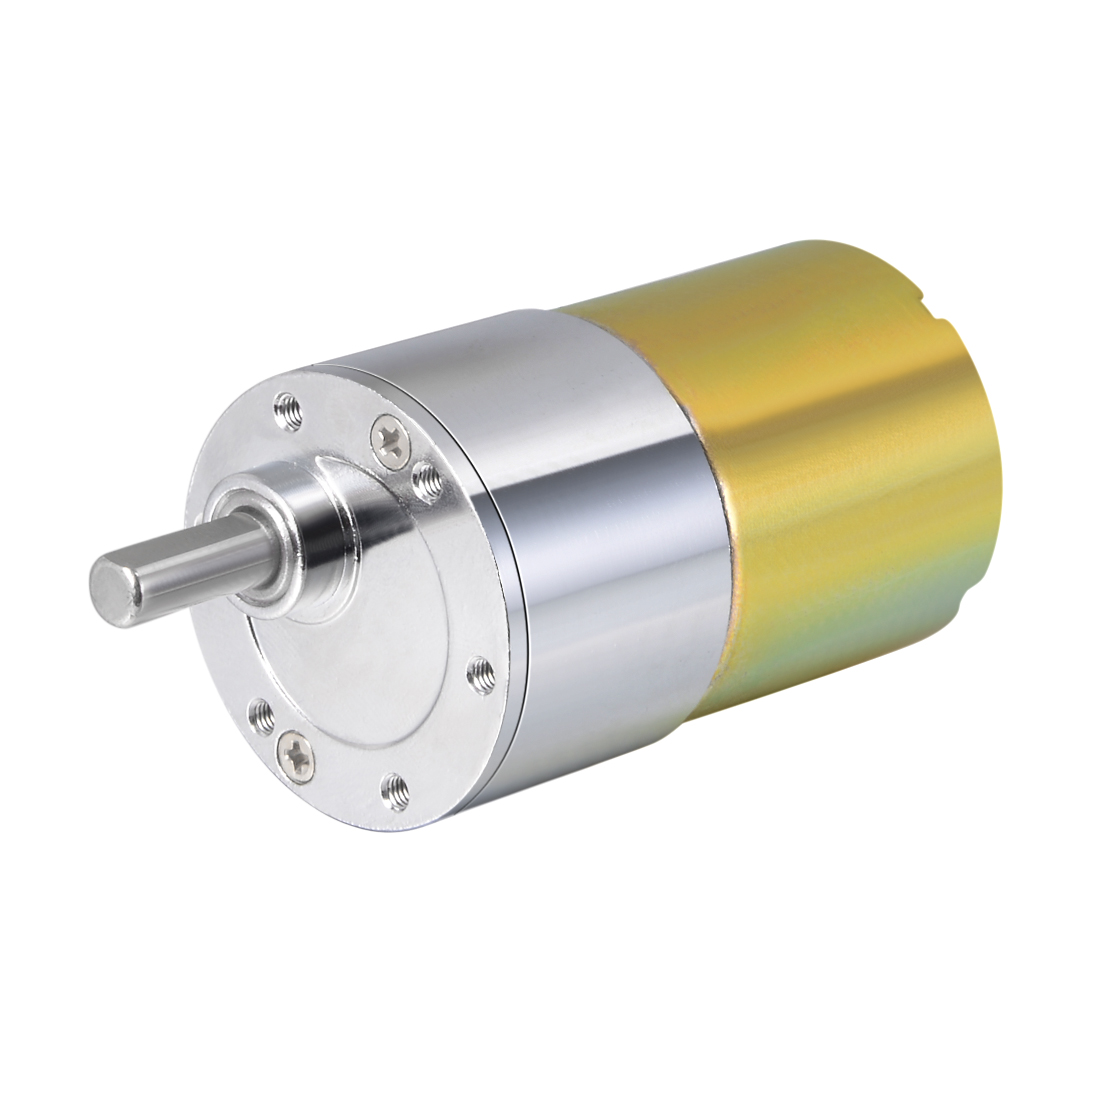 12V DC 300 RPM Gear Motor High Torque Reduction Gearbox Eccentric Output Shaft